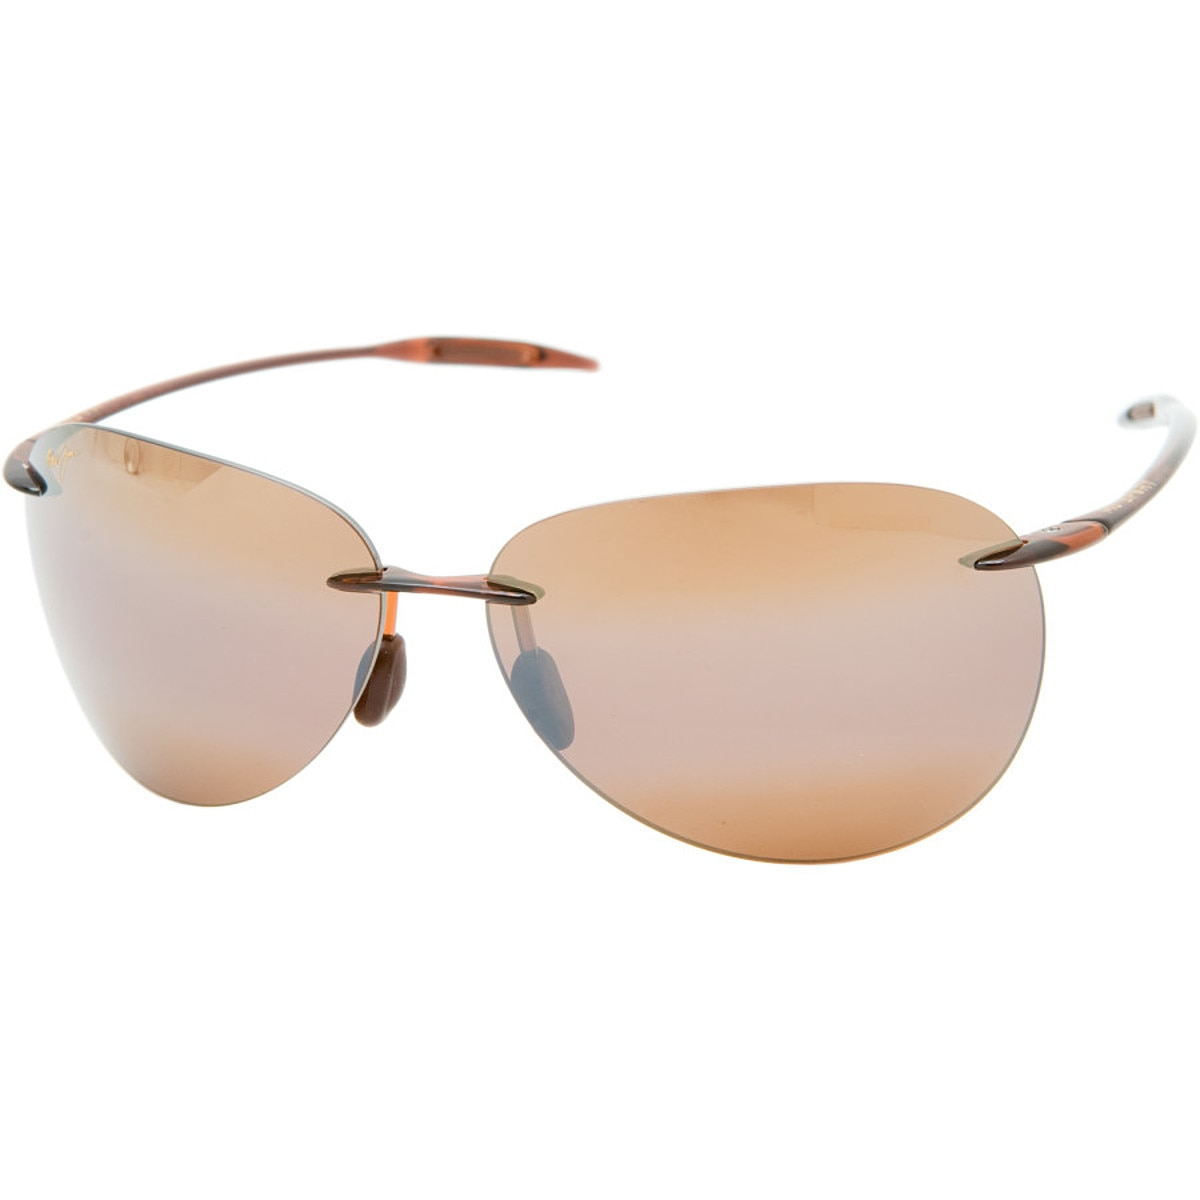 Maui Jim Sugar Beach